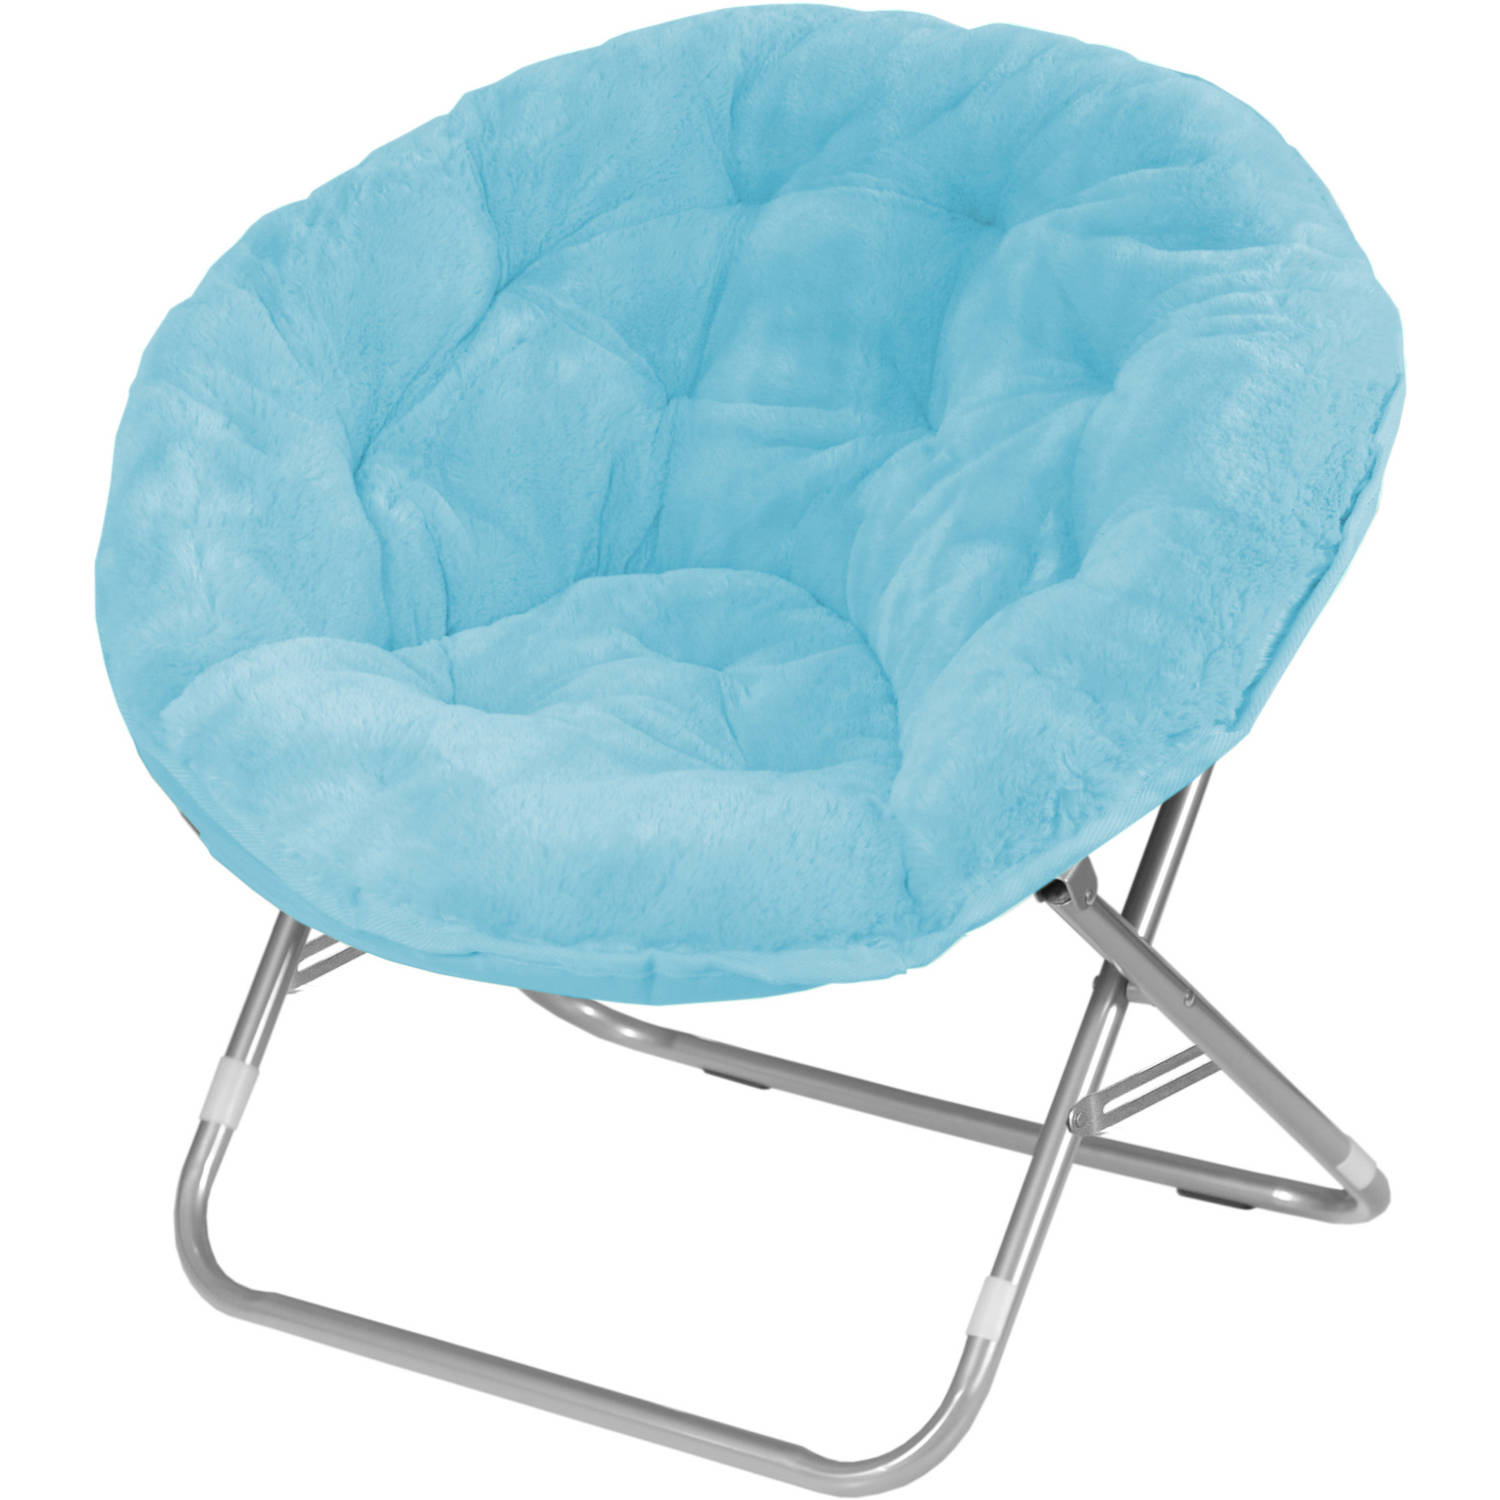 Attirant Mainstays Faux Fur Saucer Chair, Available In Multiple Colors   Walmart.com